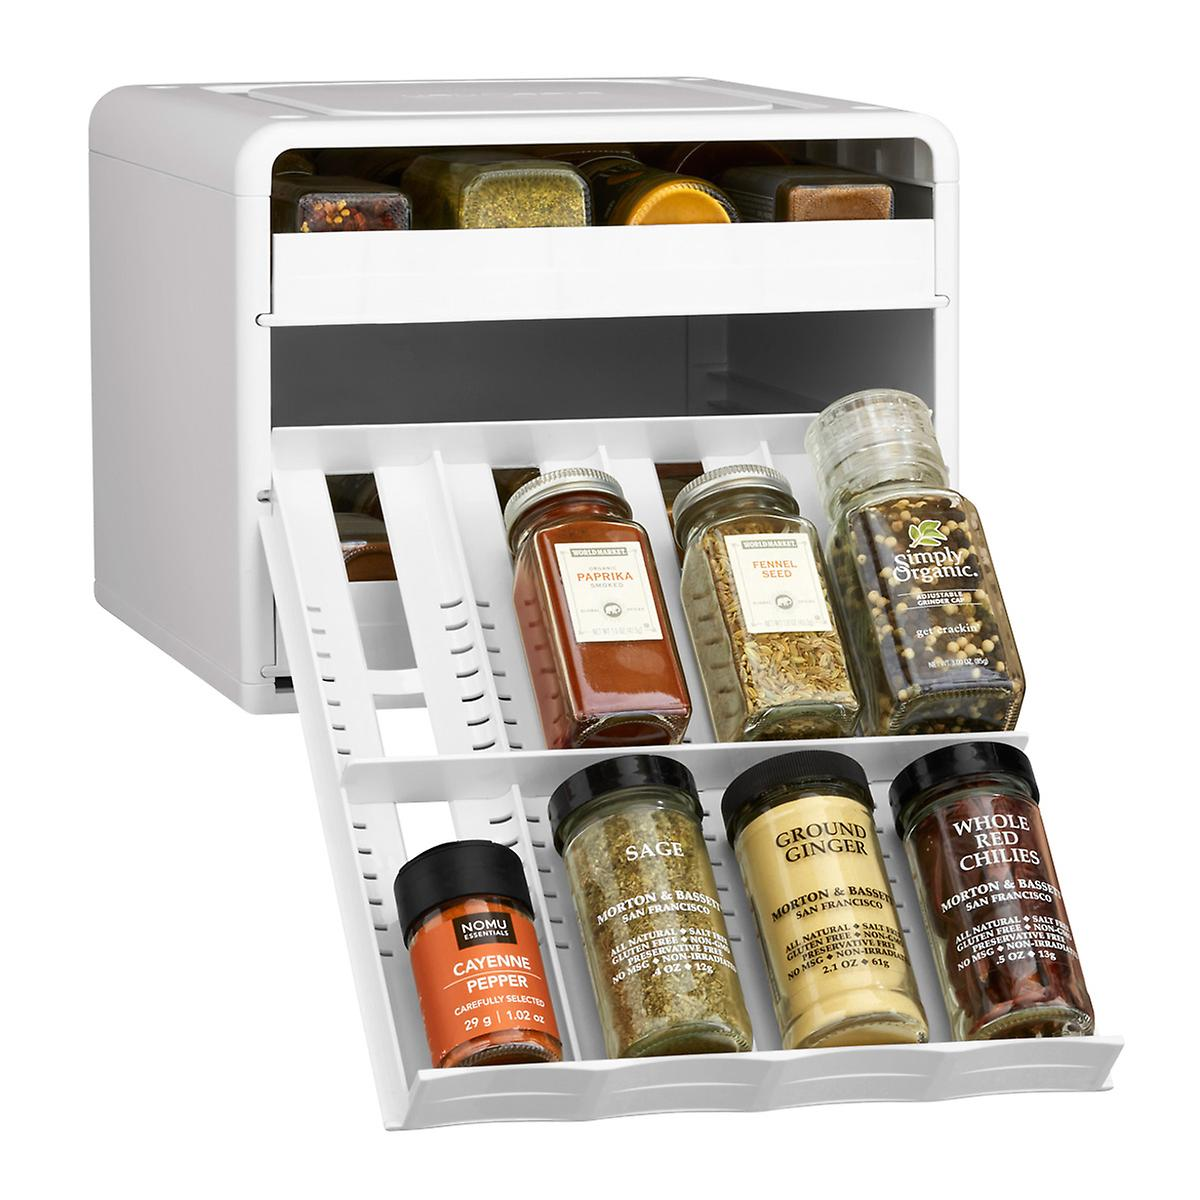 YouCopia 24-Bottle SpiceStack